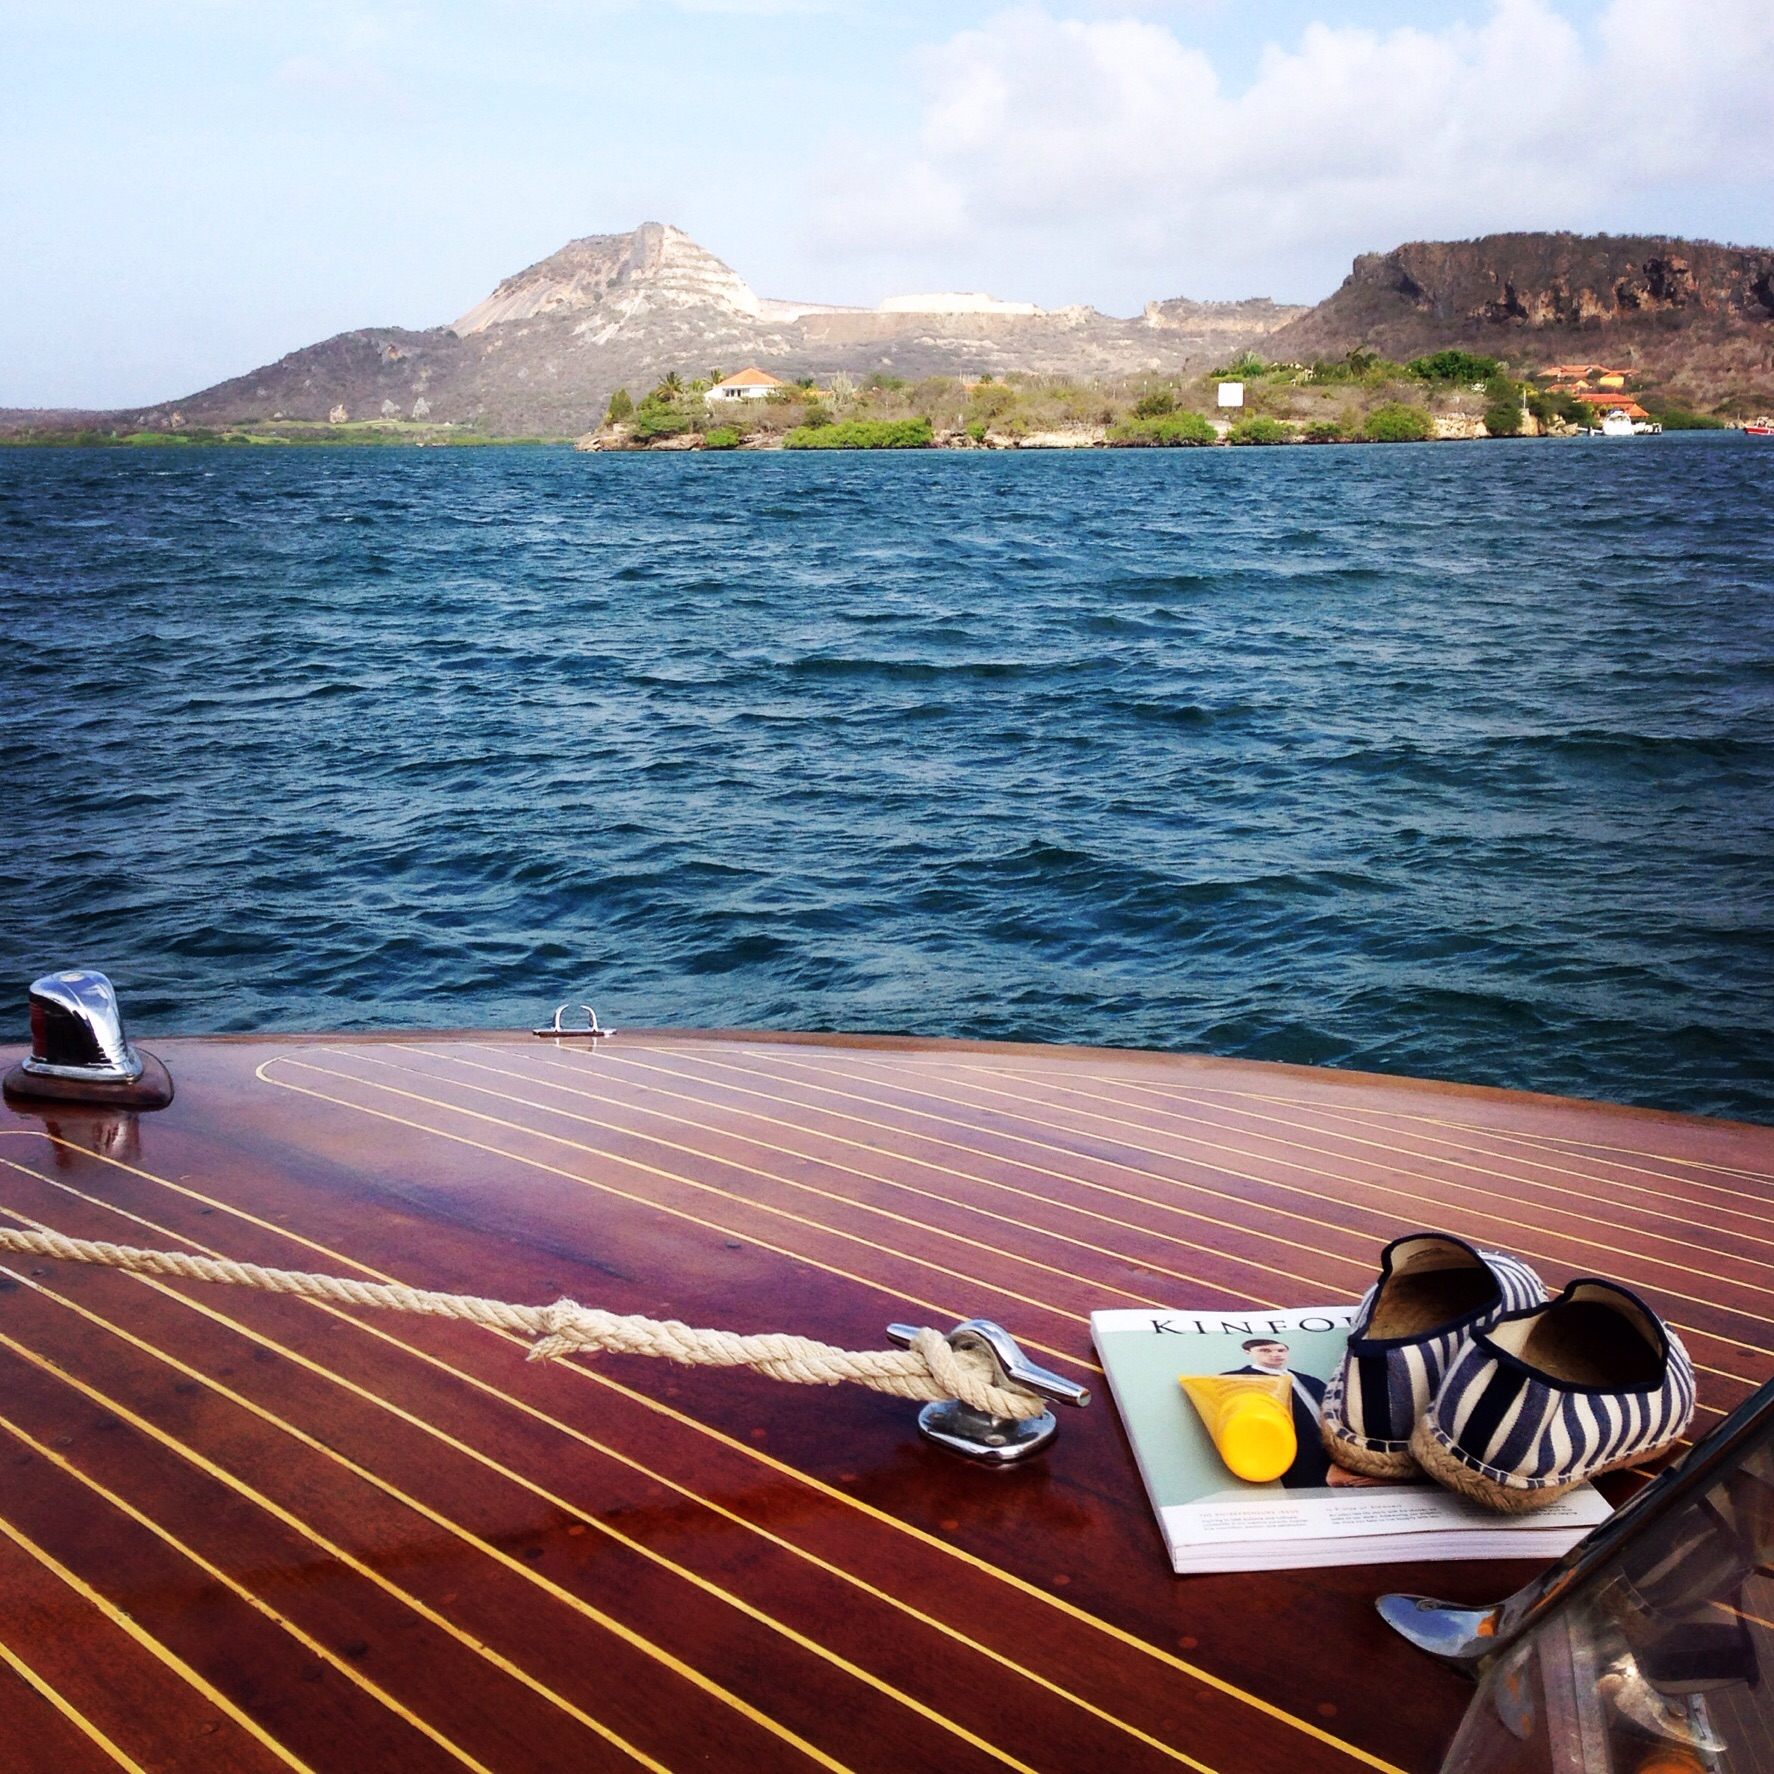 On the Saint. A lovely day in Curacao.